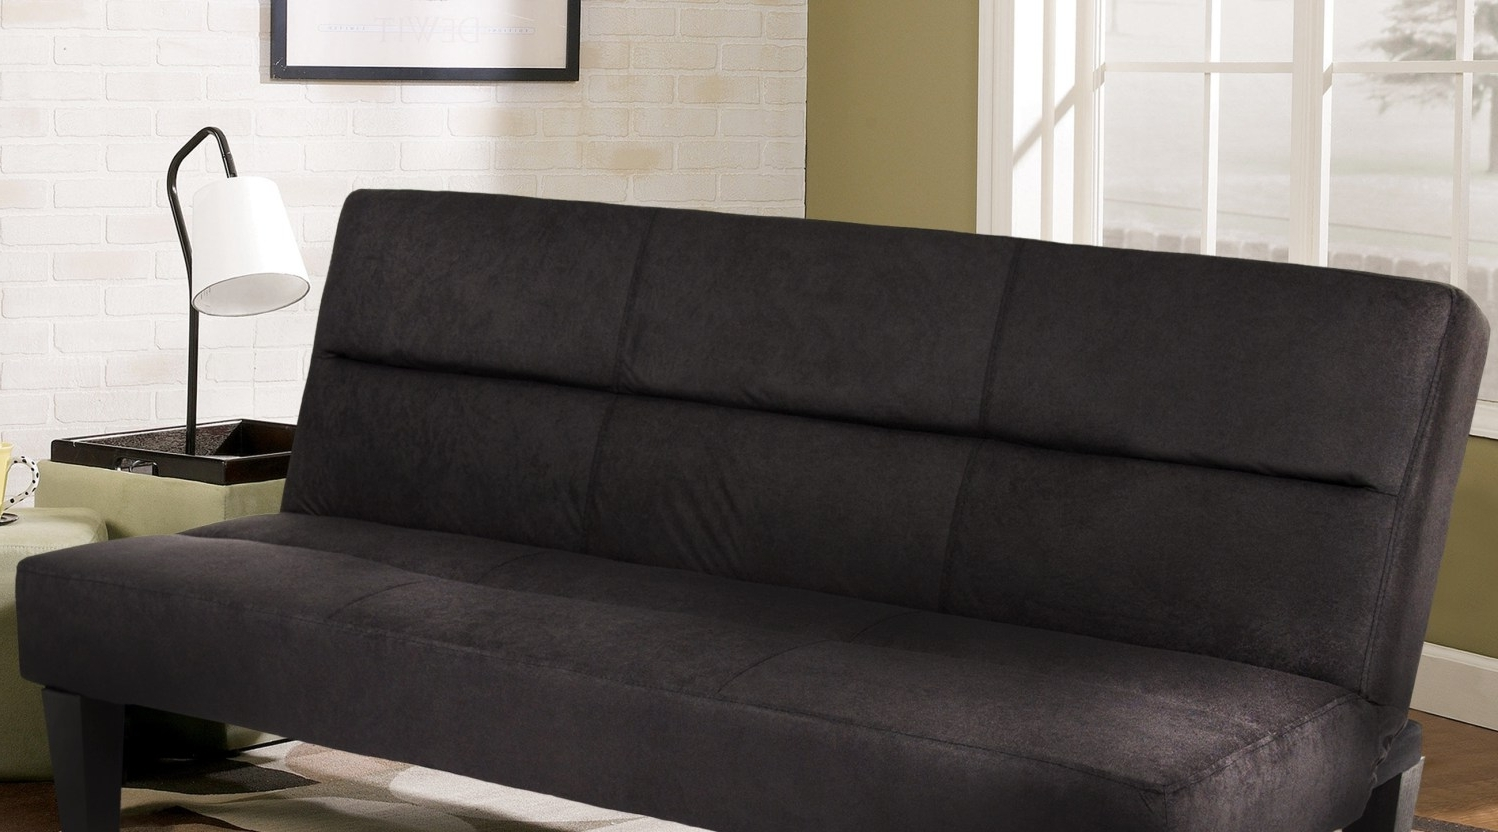 Washable Sofas With Famous Inspiring Living Room Inspirations With Sofa Washable Sofas (View 9 of 15)